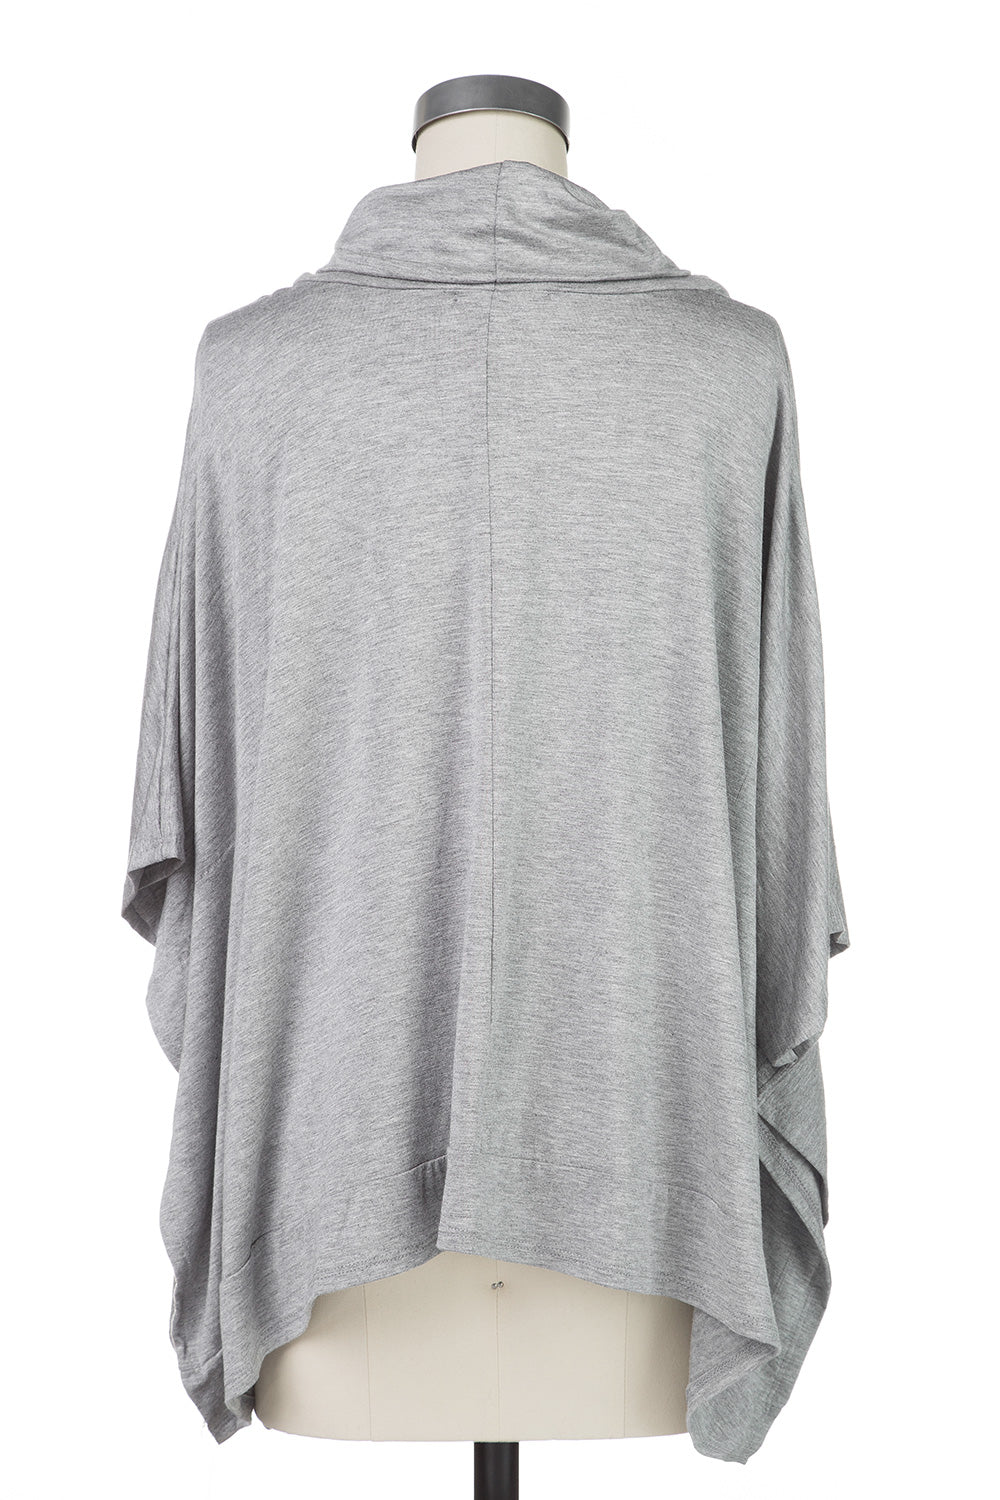 Type 2 Rainy Day Pullover Top